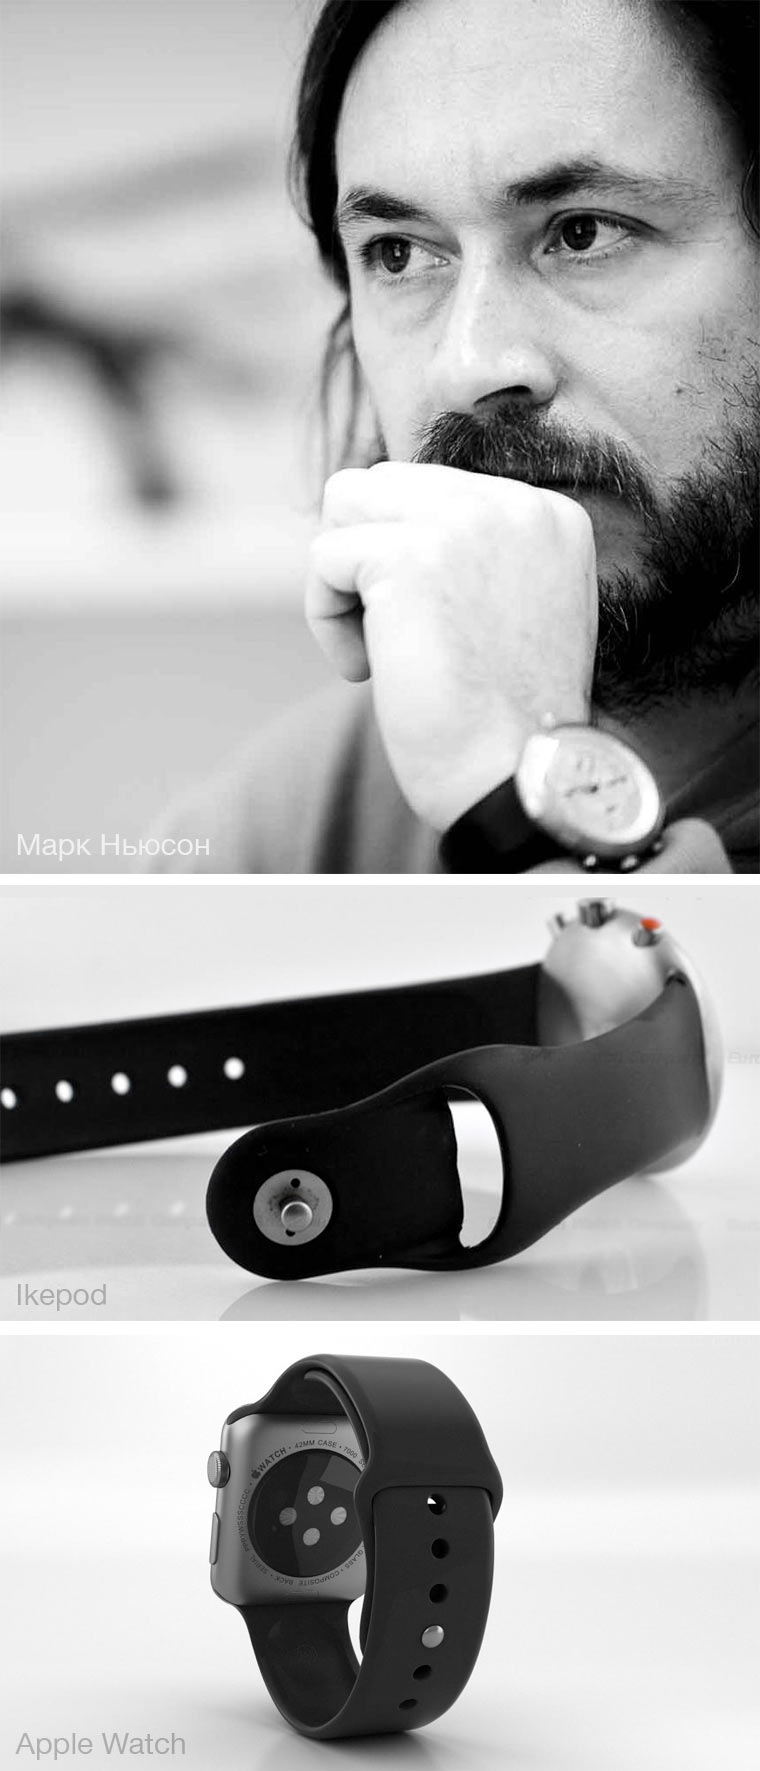 ikepod-strap-vs-apple-watch